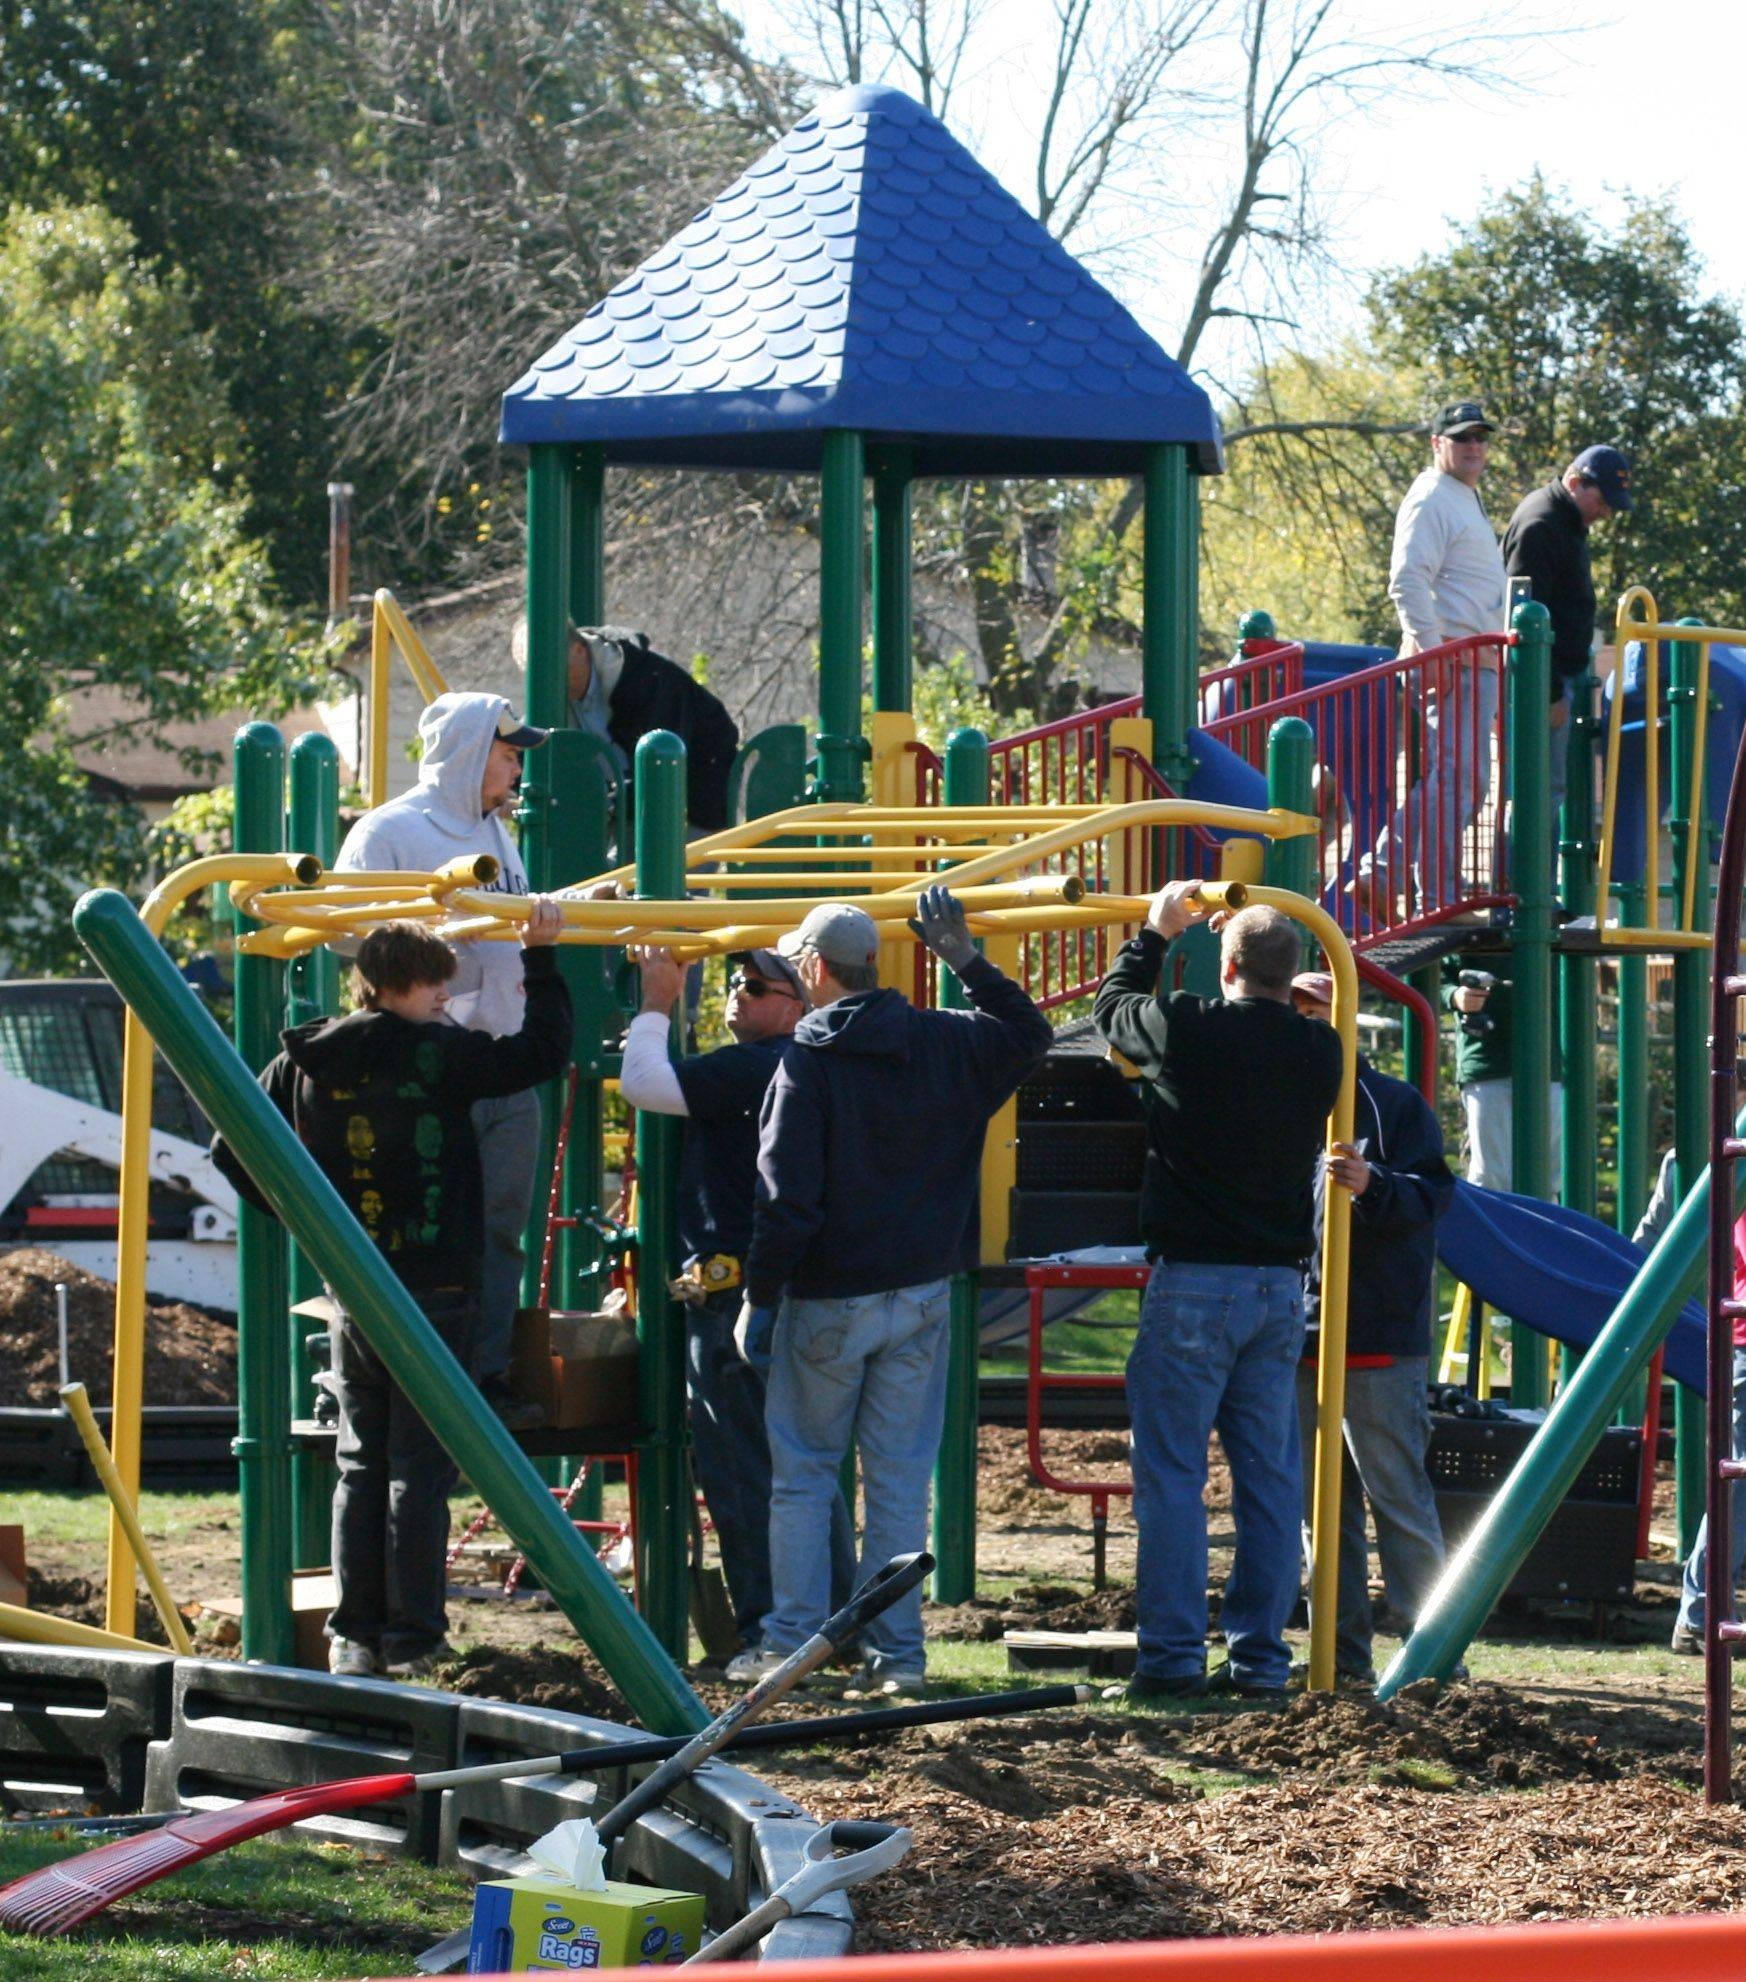 Mundelein Elementary District 75 completed the construction of Eagle Park, a new school playground at Washington Elementary School in Mundelein, Oct. 15. The two-day project was staffed by more than 40 community volunteers and district staff.